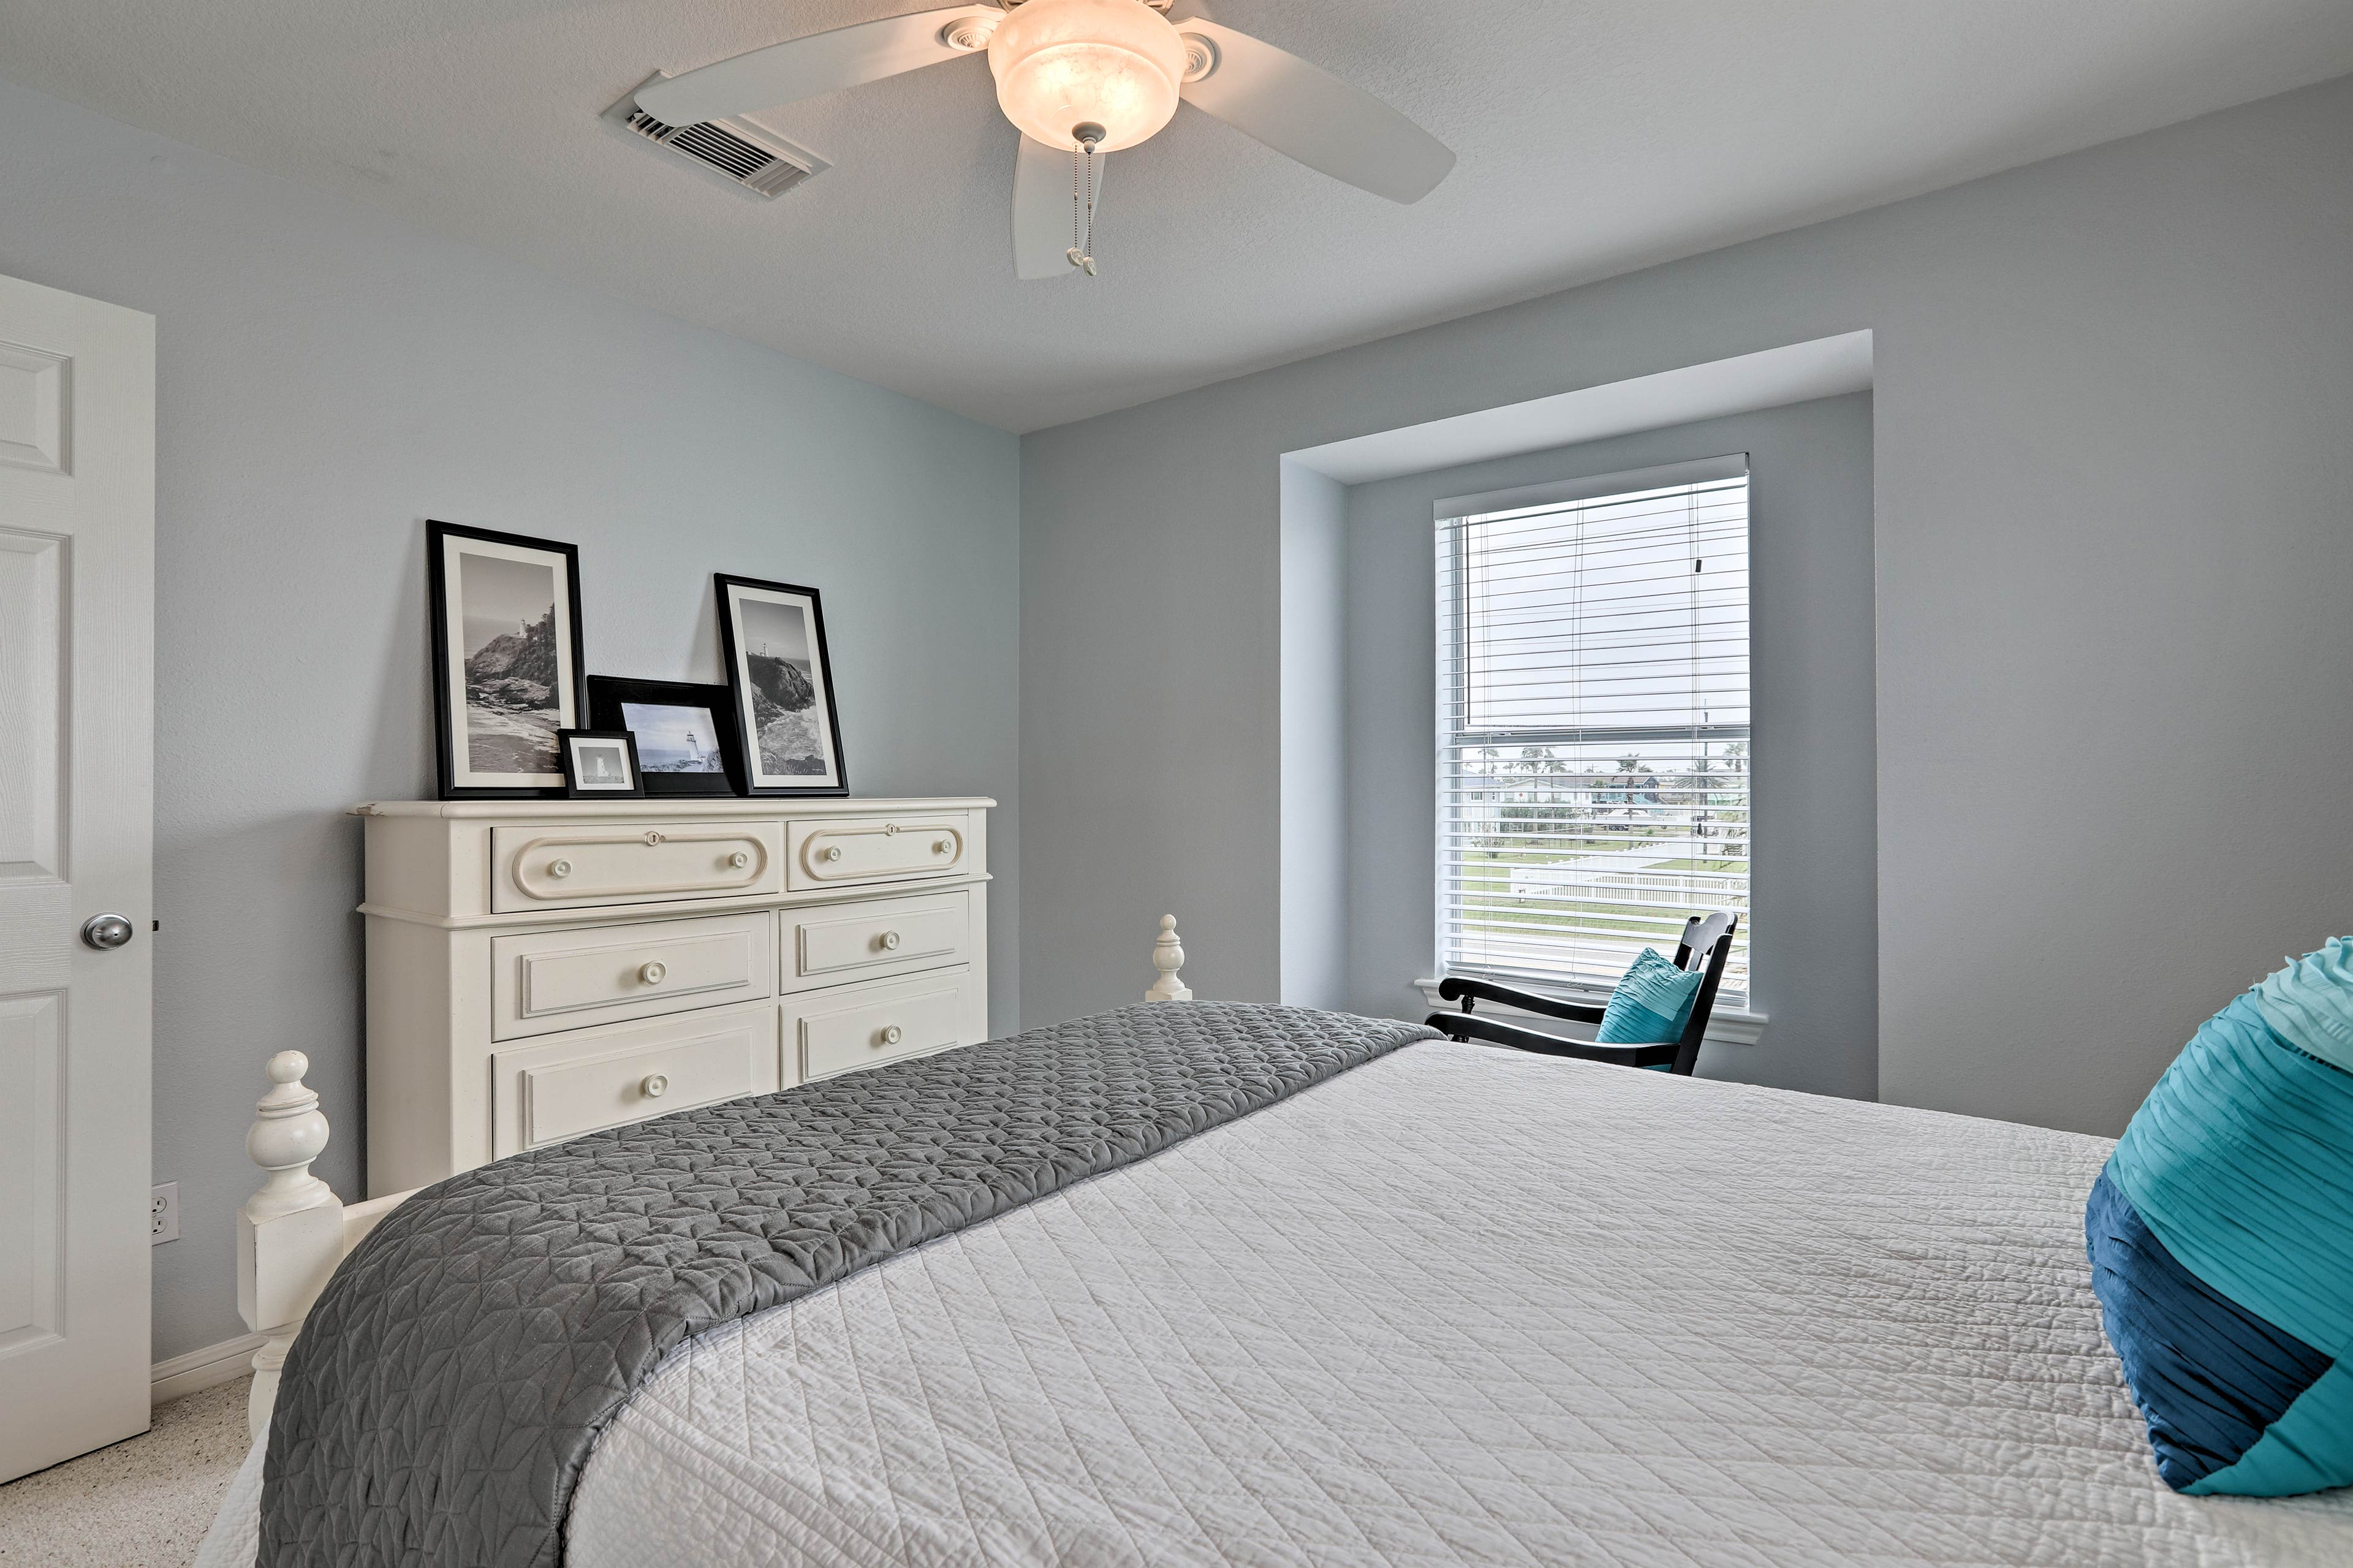 Central air conditioning and ceiling fans are sure to keep you cool.